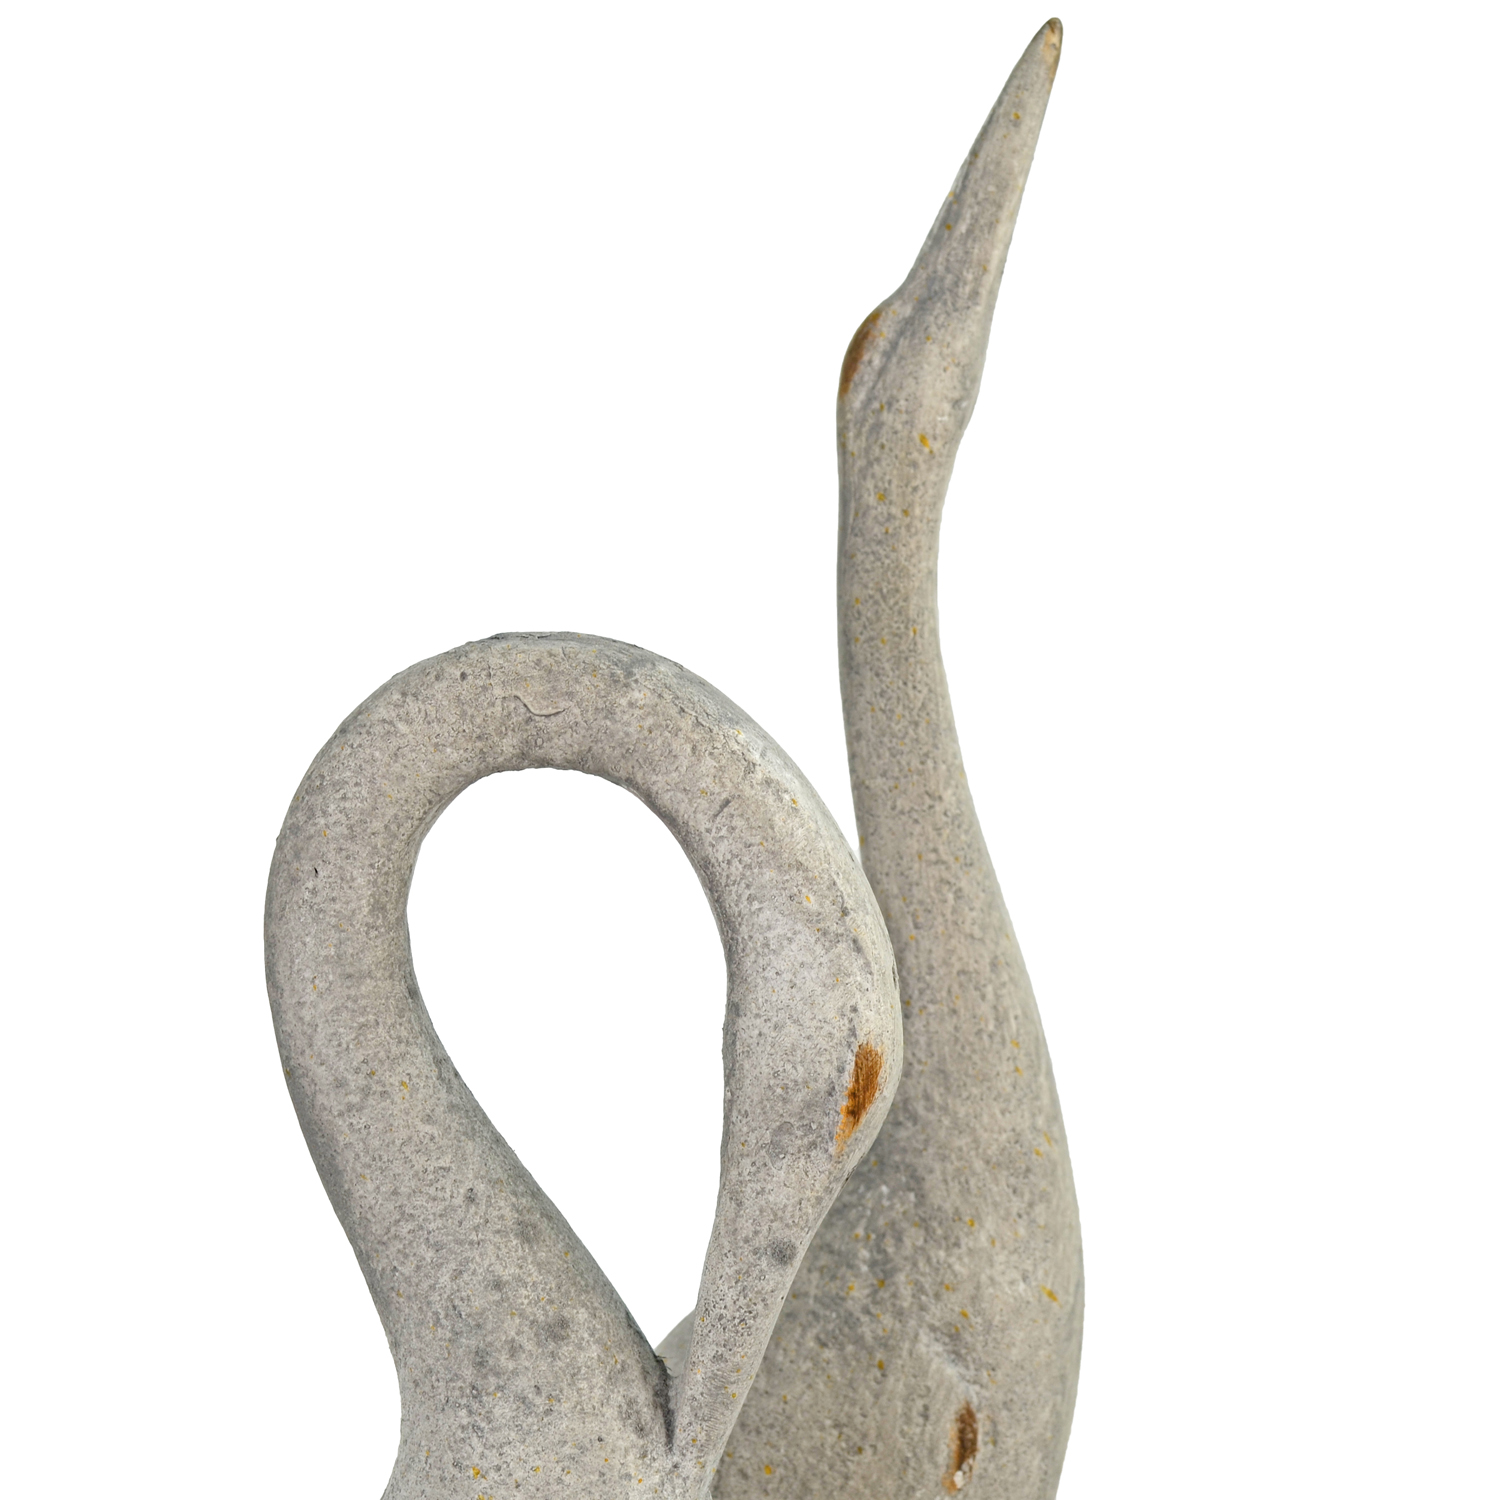 EGRET LOW 58CM WEATHERED STONE EFFECT DETAIL WS12